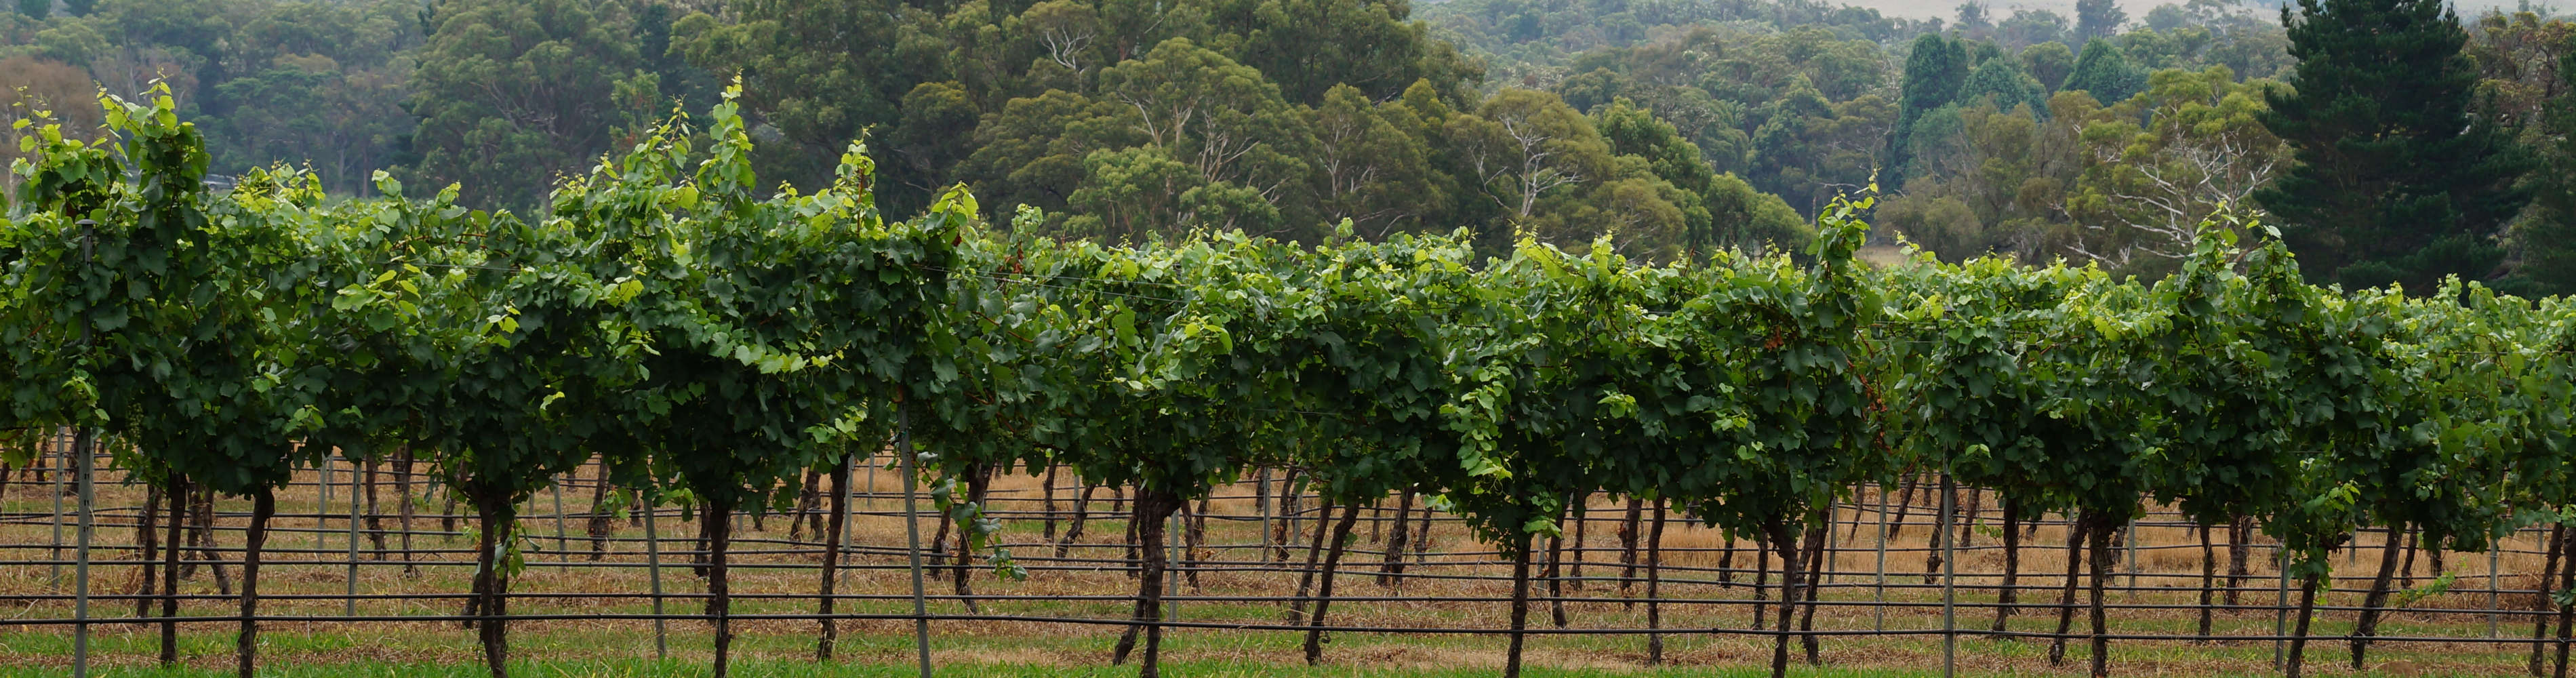 nattai creek vines